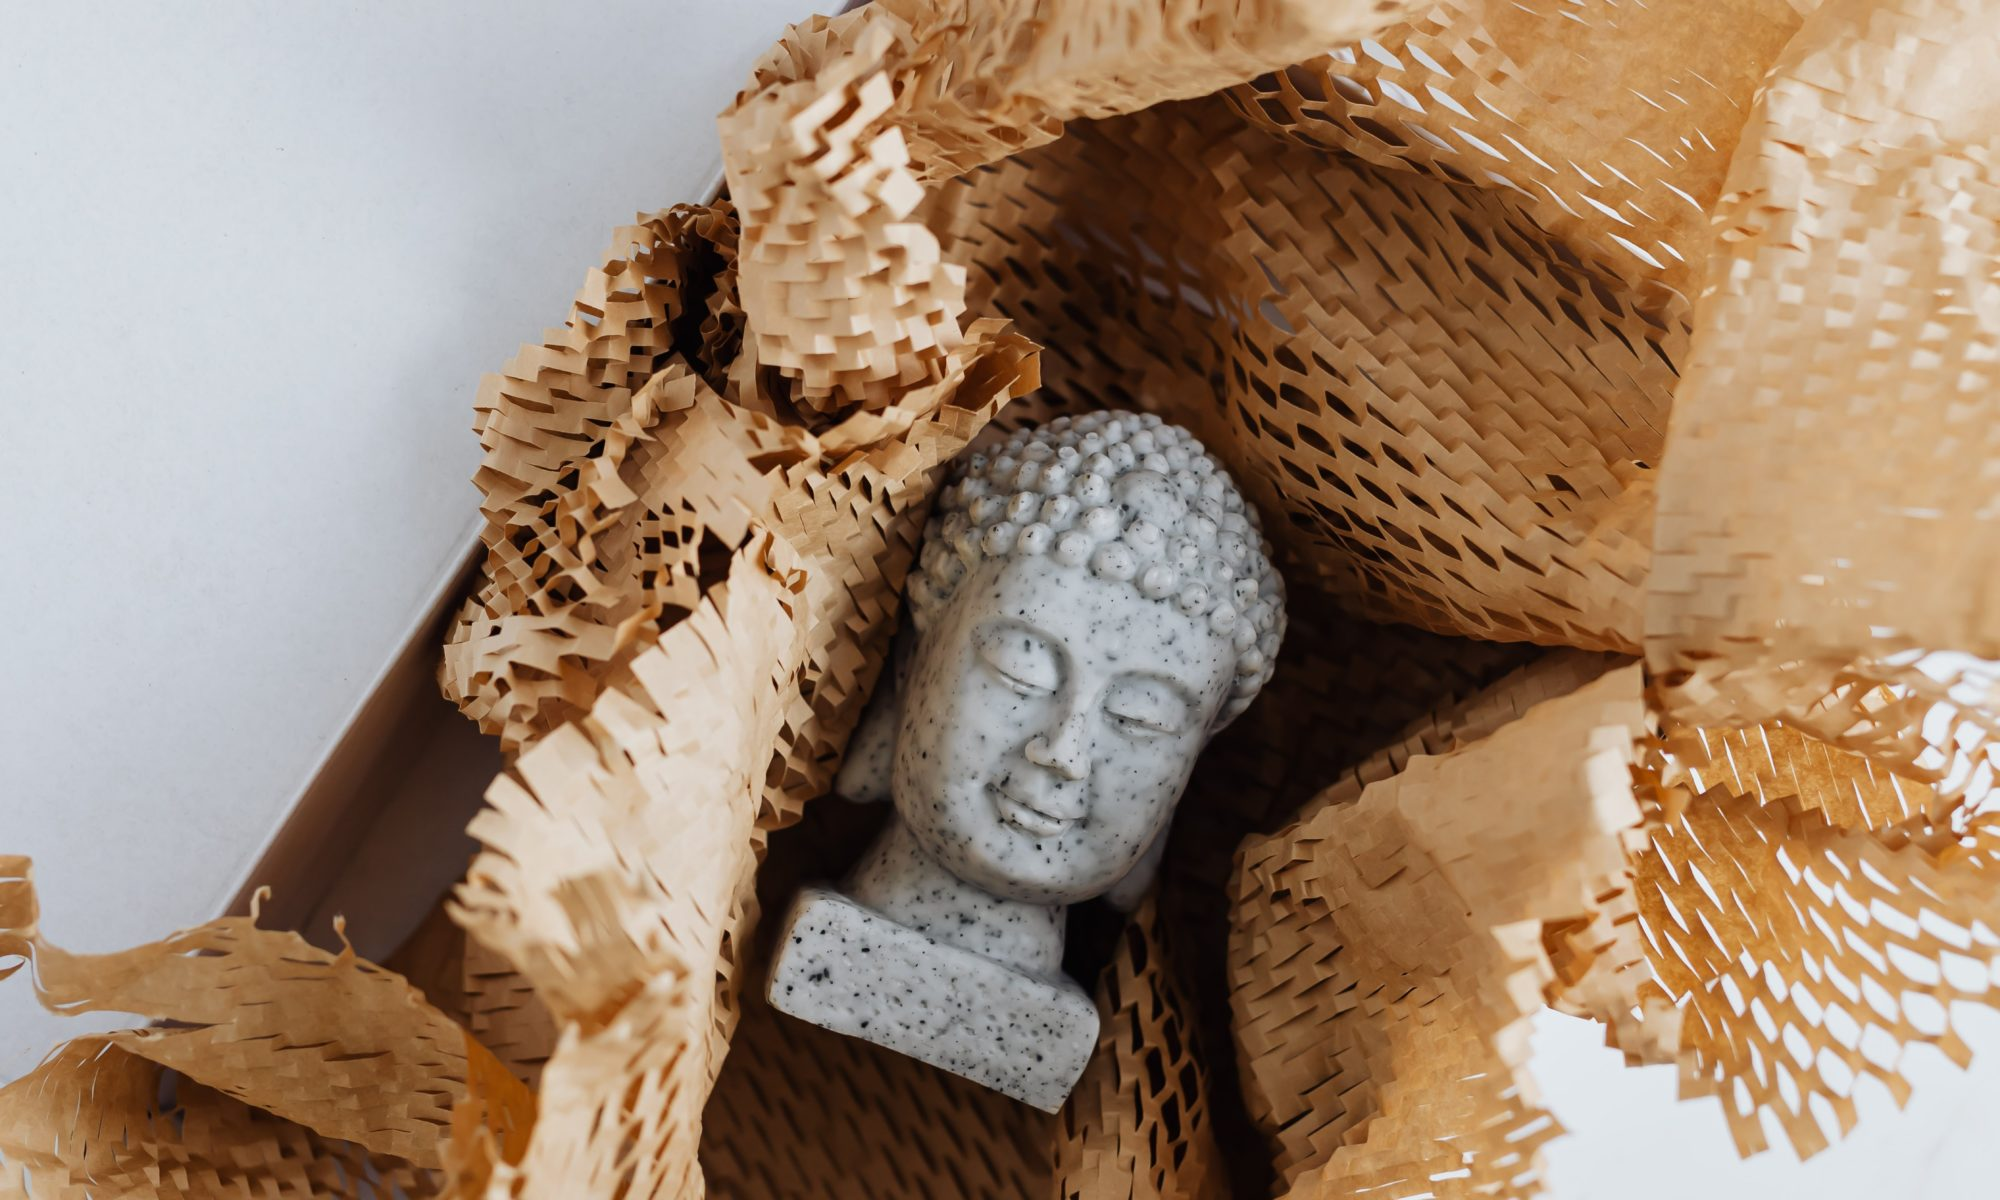 Buddha head in packing material